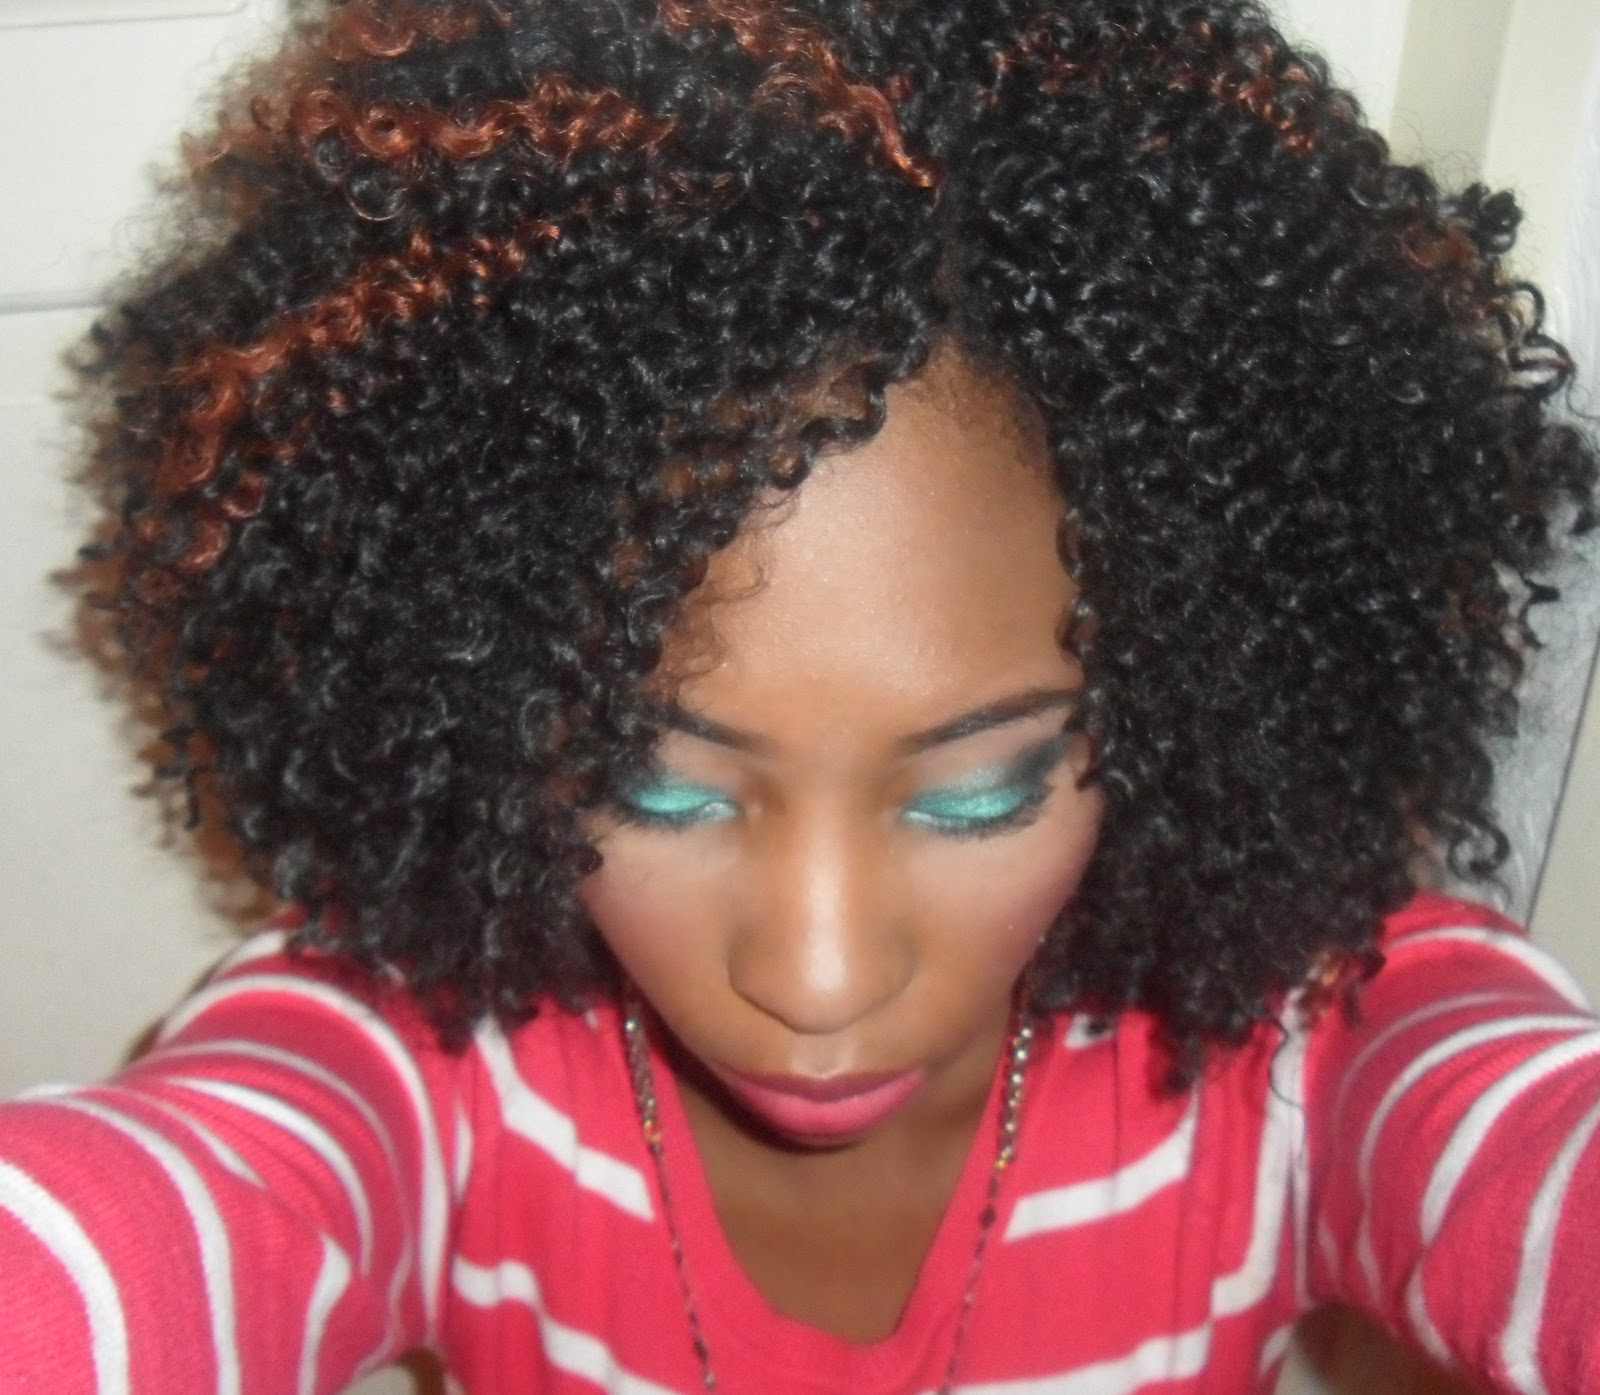 All Crochet Hair Styles : If you are interested in learning how to do crochet braids, here is a ...